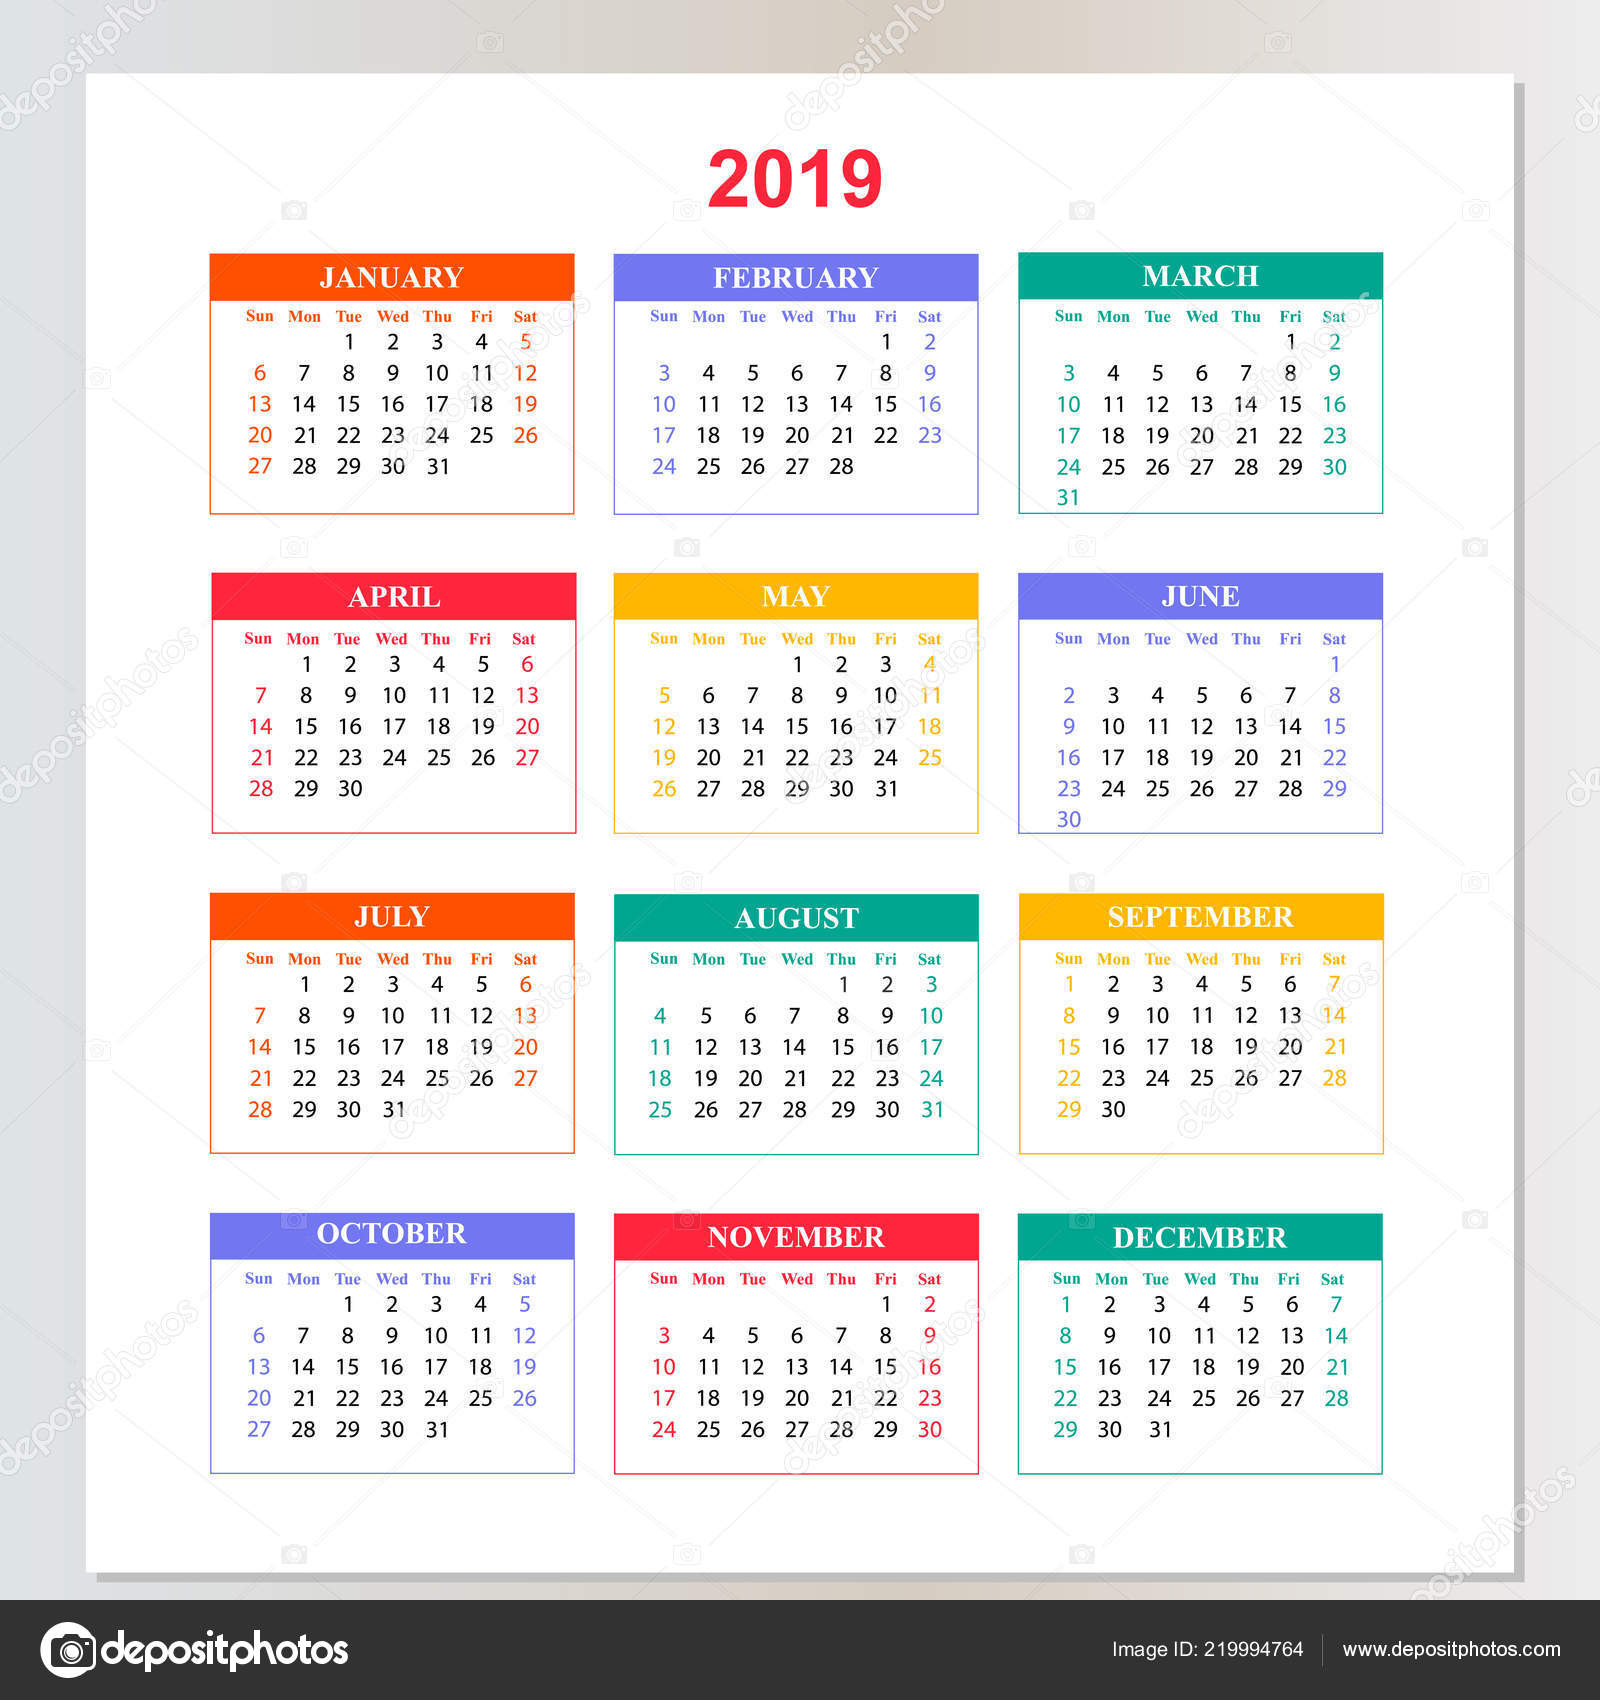 Wall Calendar For 2019 Year From Sunday To Saturday 219994764 with Sunday To Saturday Calendar